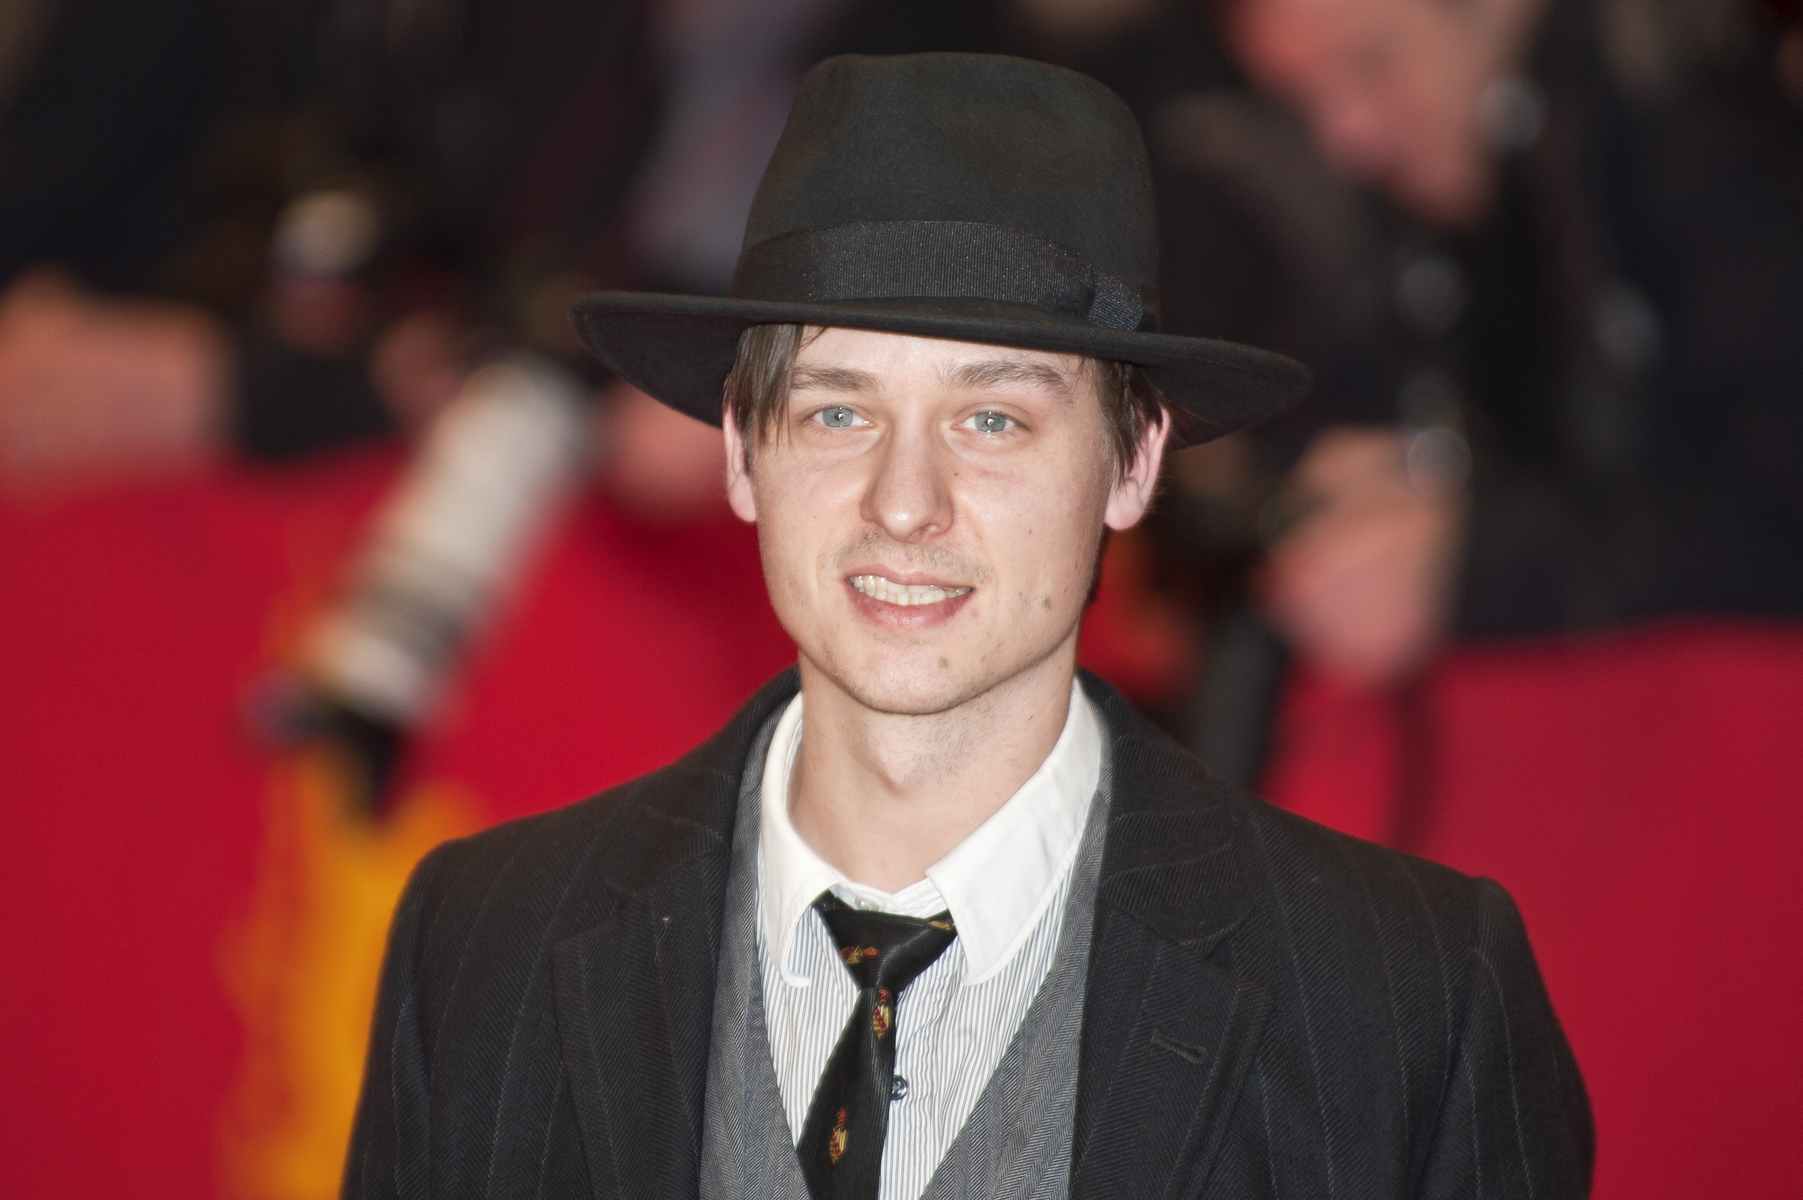 http://upload.wikimedia.org/wikipedia/commons/8/83/Tom_Schilling_(Berlin_Film_Festival_2011).jpg